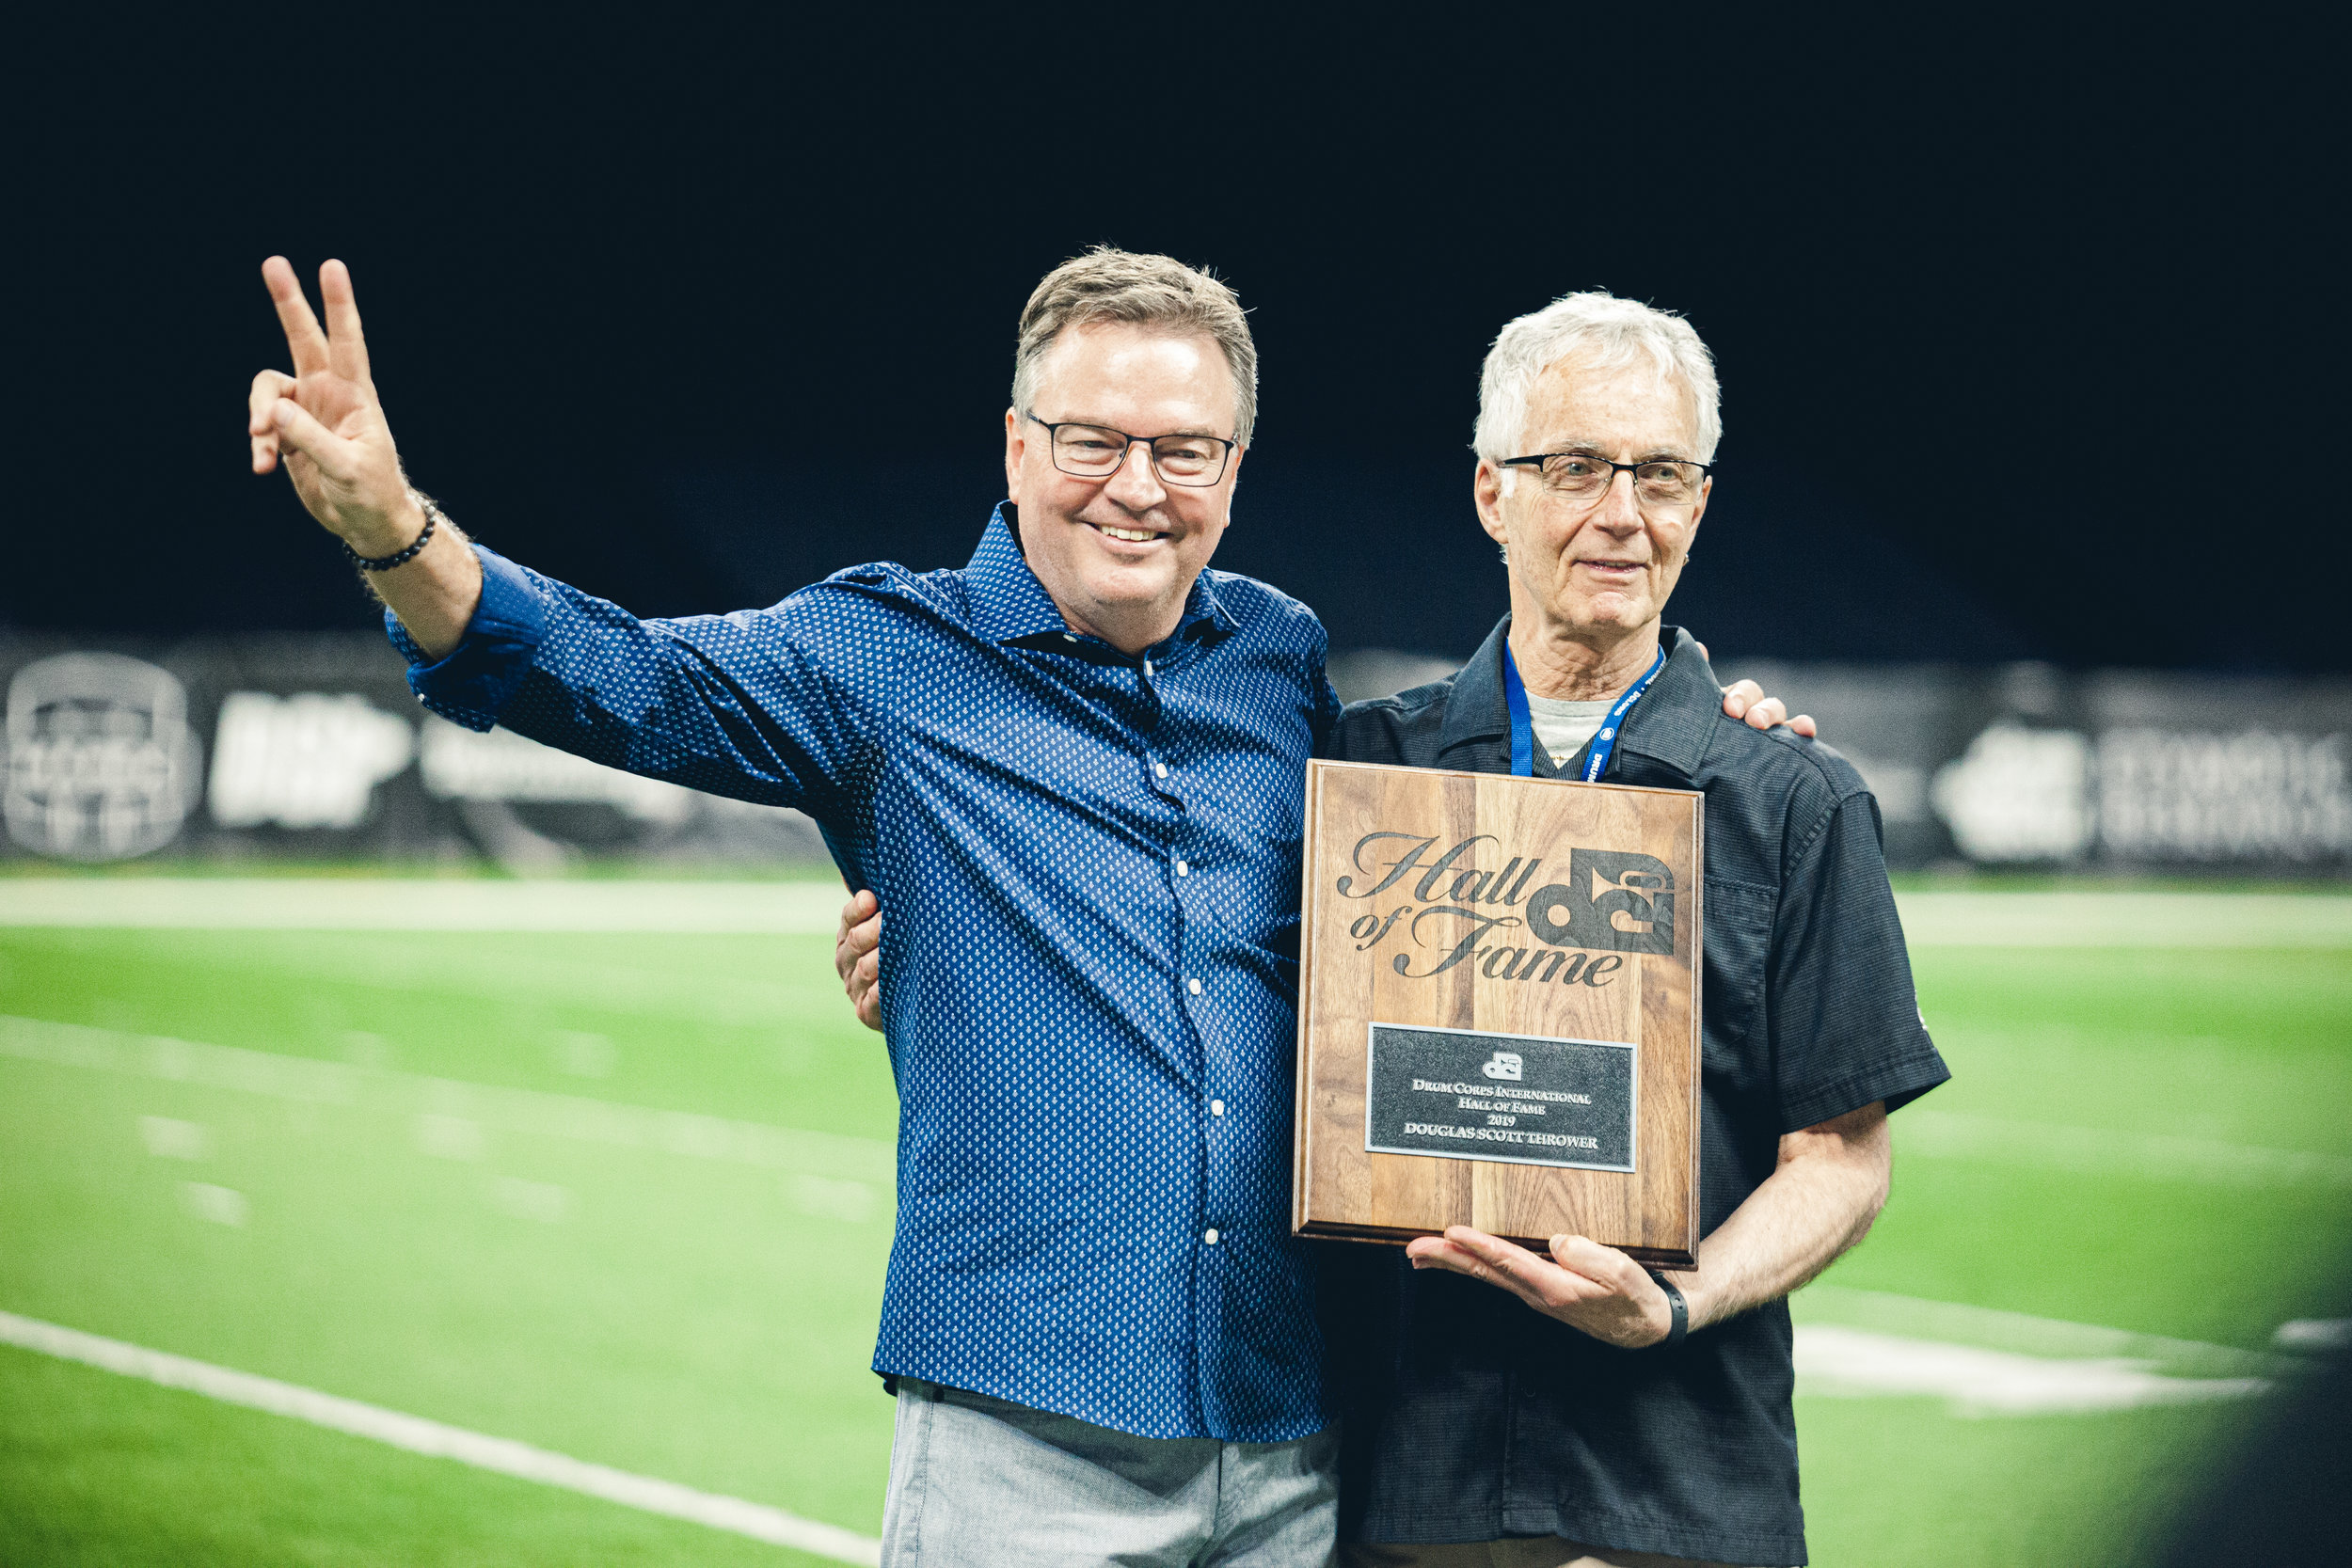 Bluecoats Composer / Brass Arranger Doug Thrower accepts his DCI Hall of Fame award at the 2019 DCI World Championships.